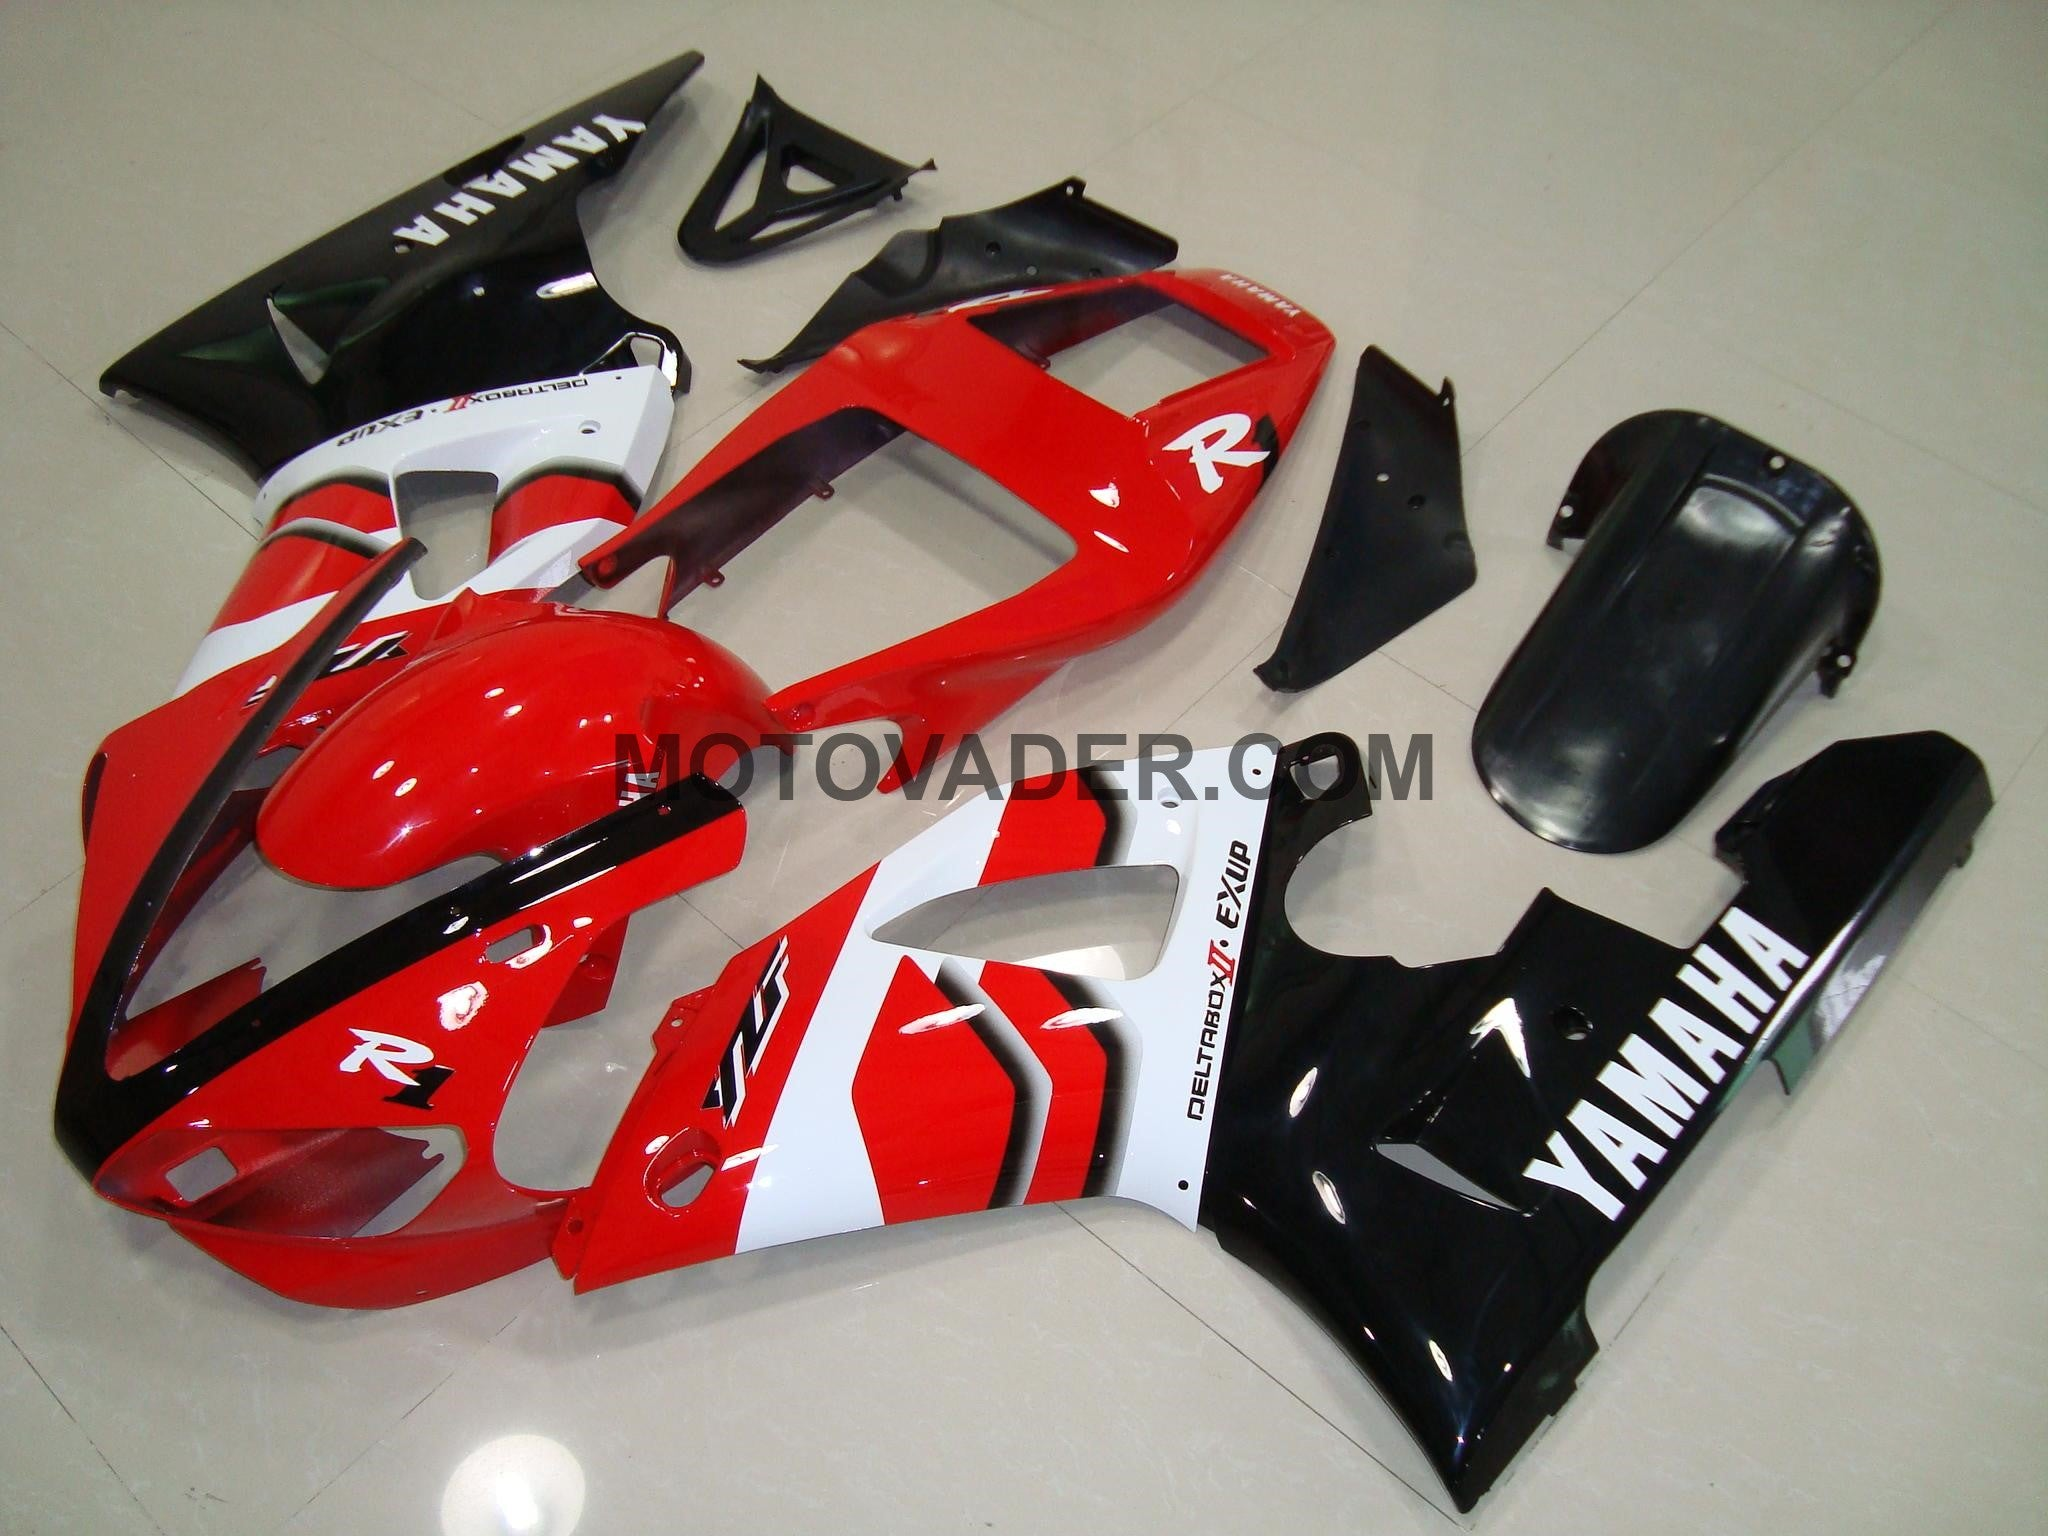 Yamaha R1 1998-1999 Red & Black 3 Fairing